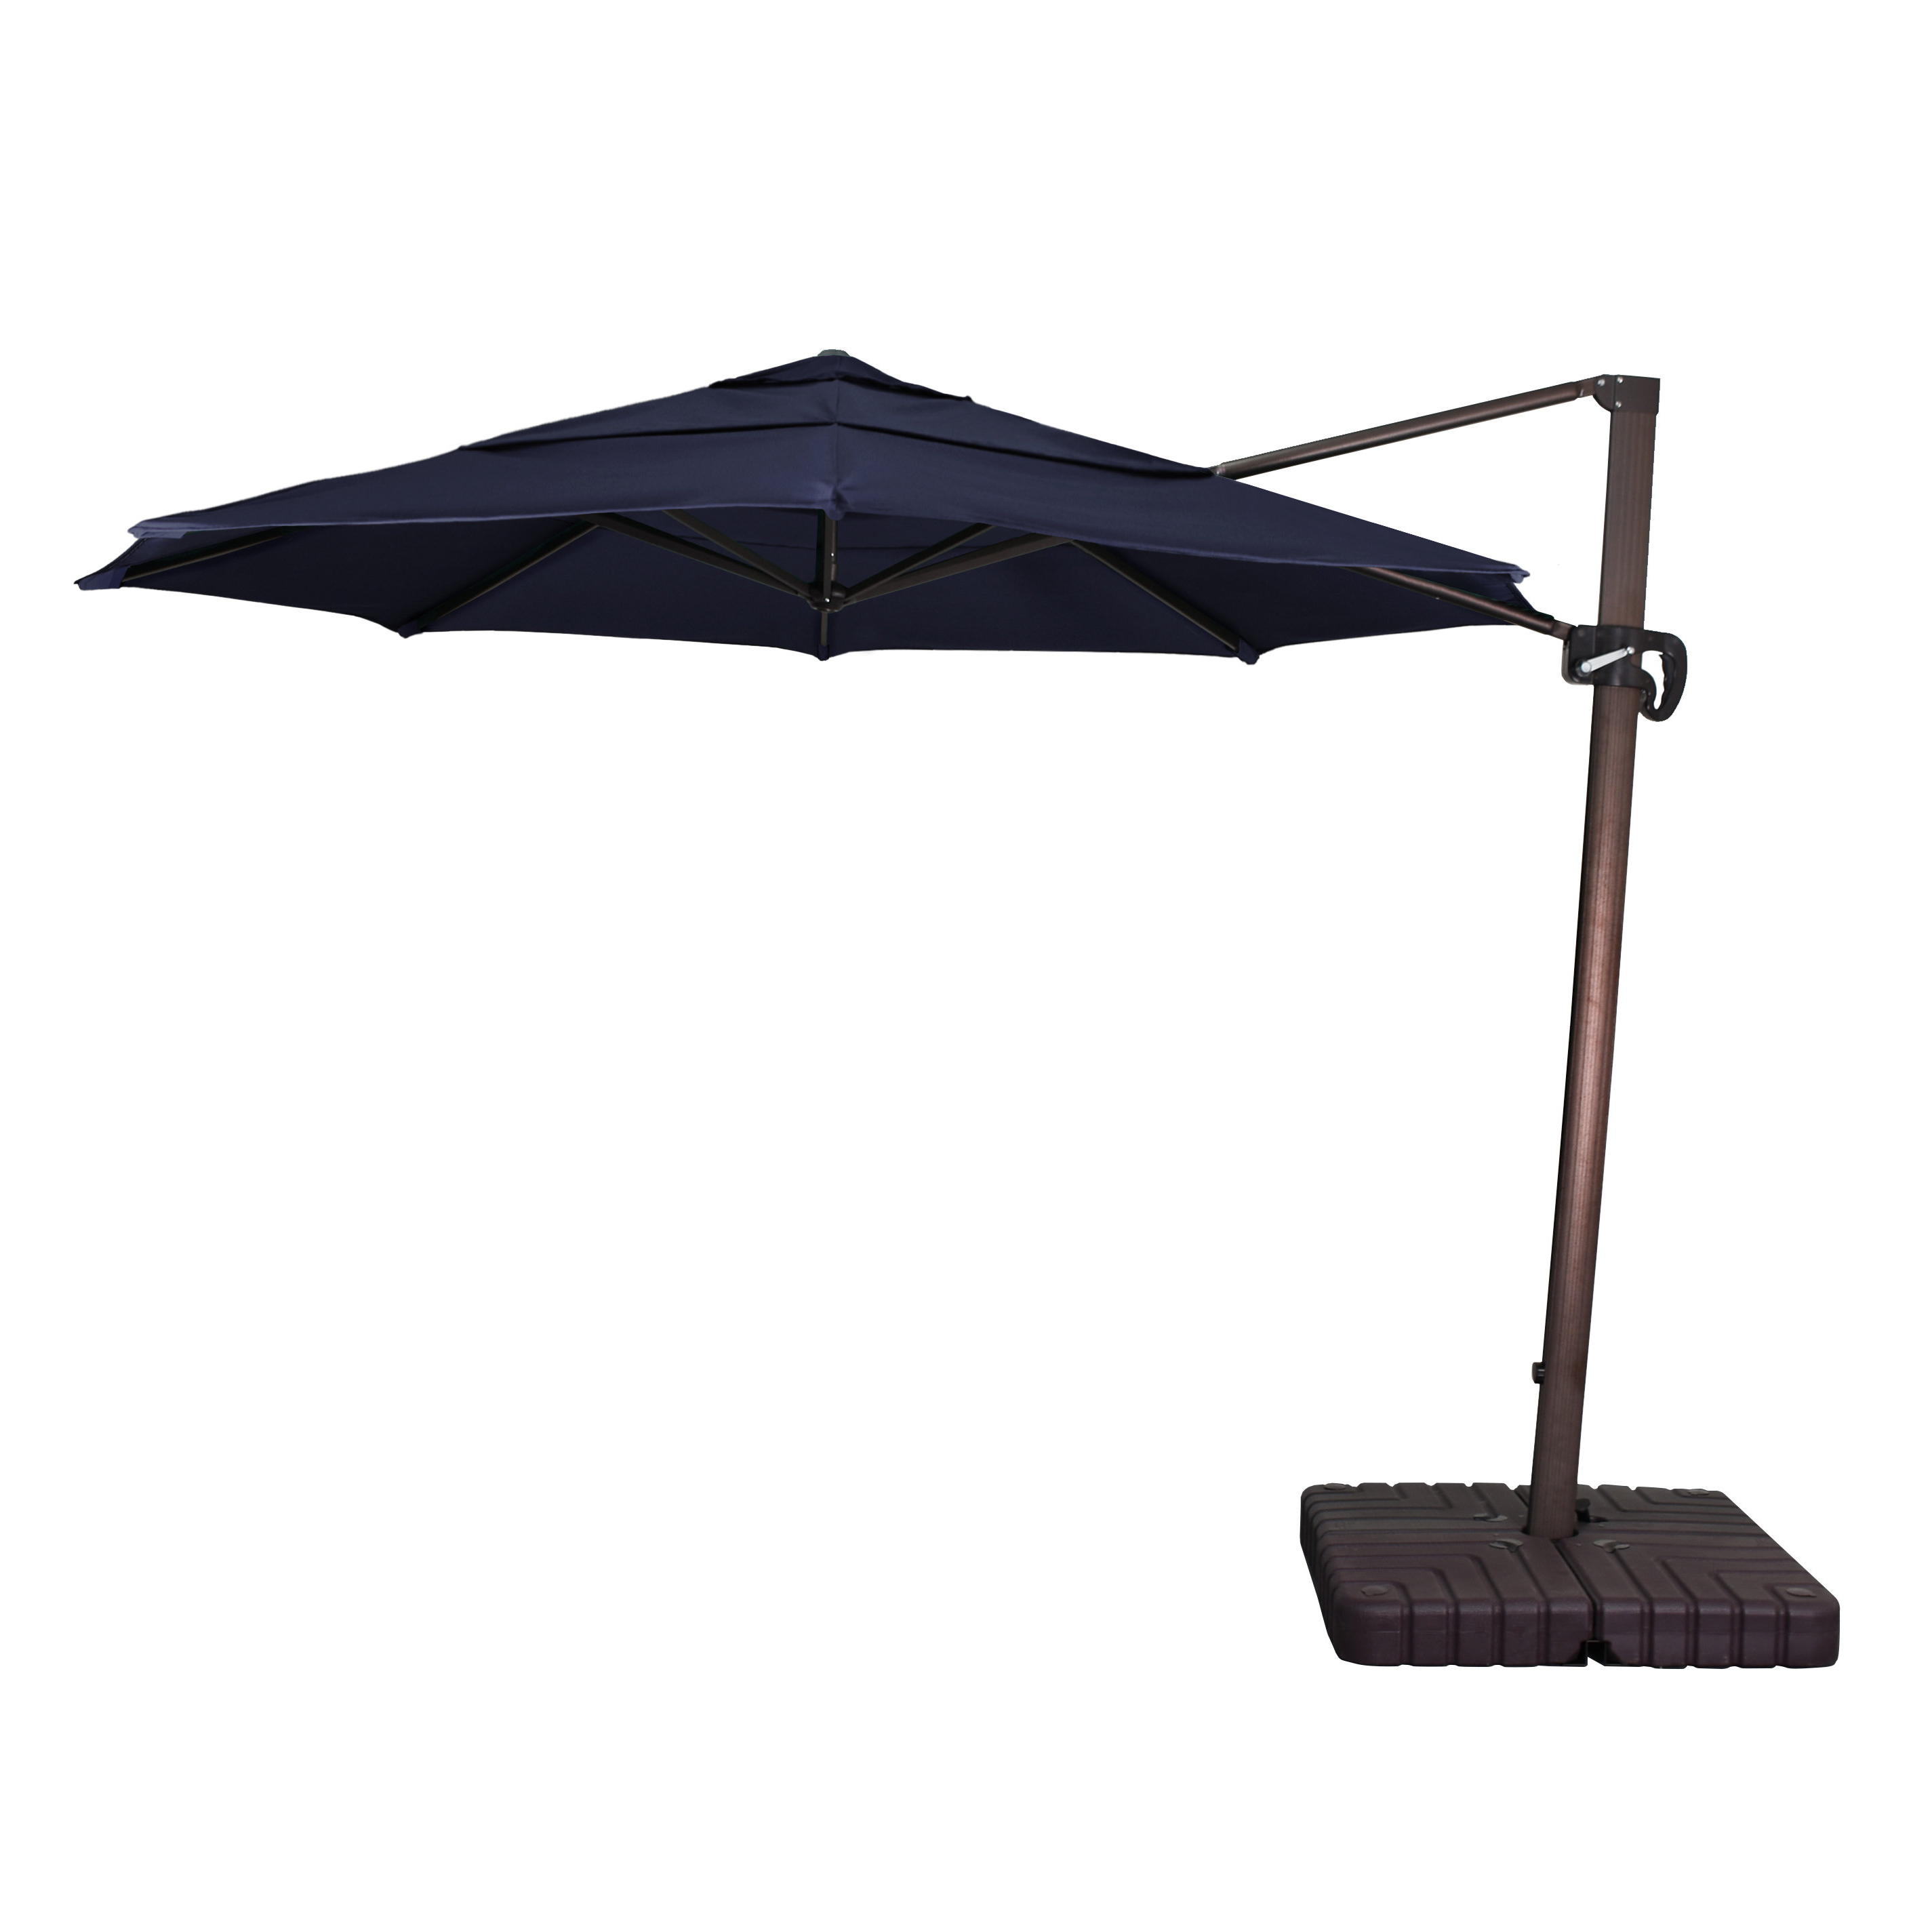 Carlisle 11' Cantilever Sunbrella Umbrella Intended For Well Liked Ceylon Cantilever Sunbrella Umbrellas (View 4 of 20)